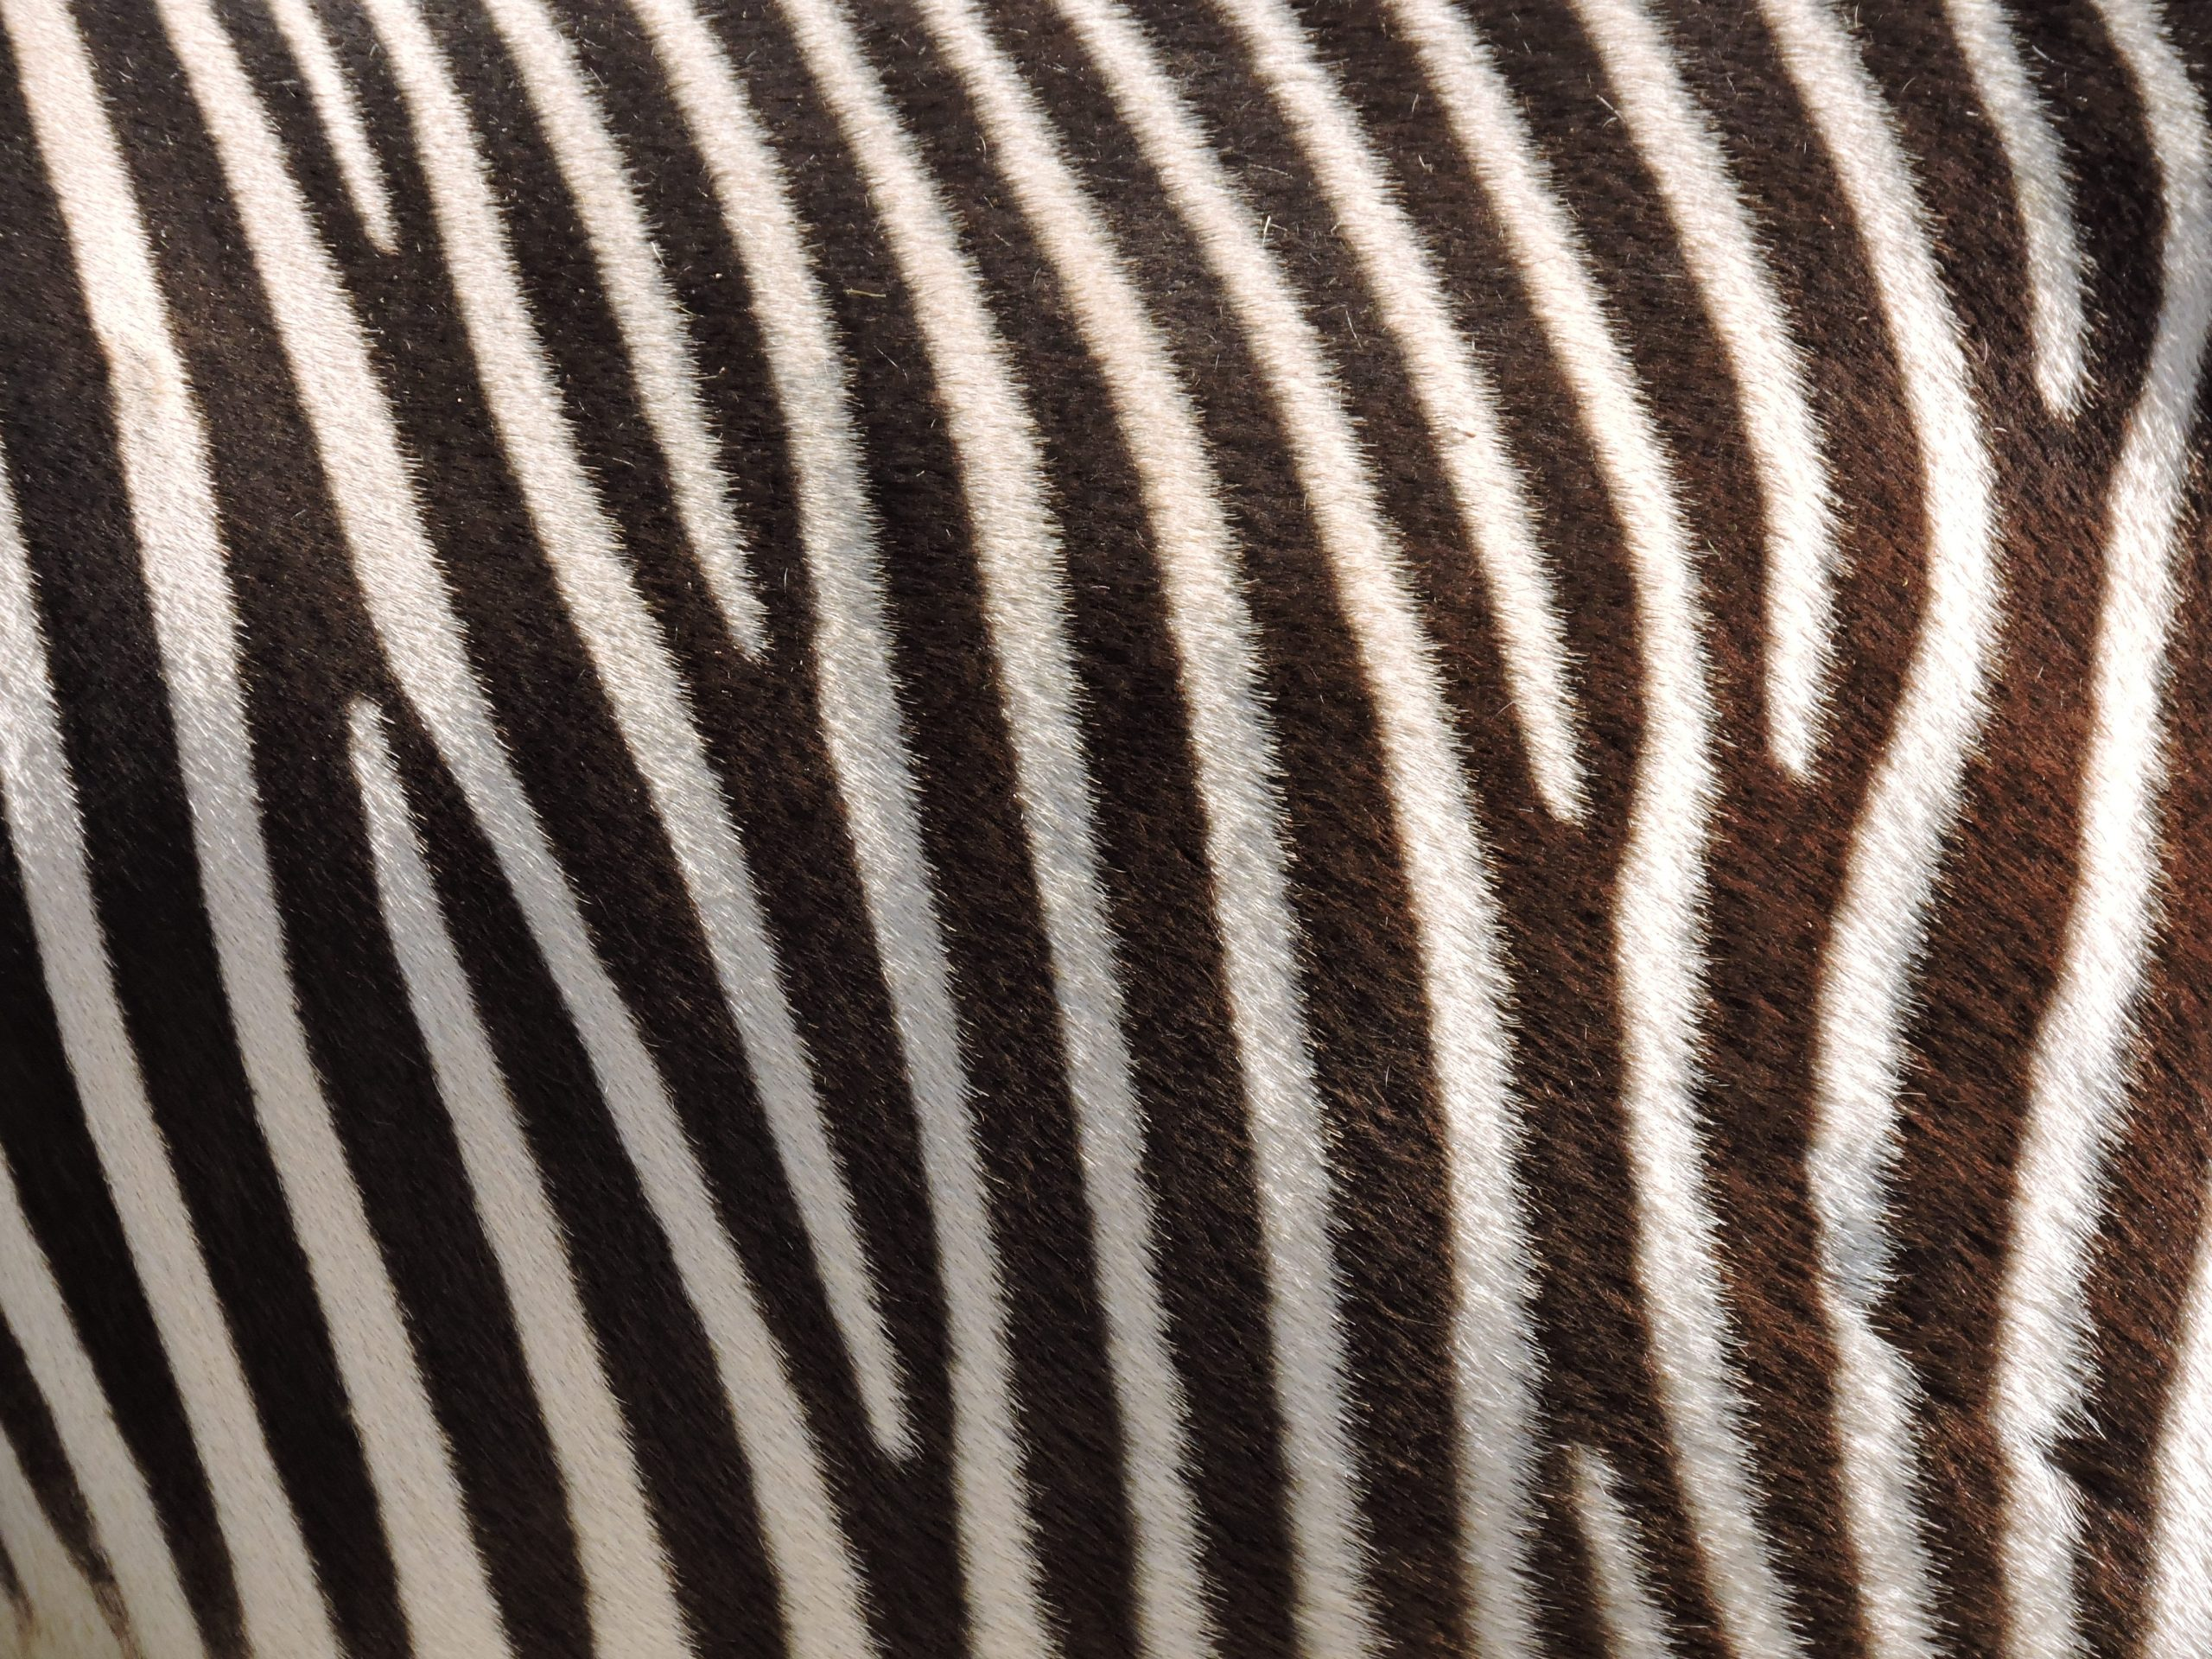 zebra stripes. Photo by ohsoshy on Unsplash